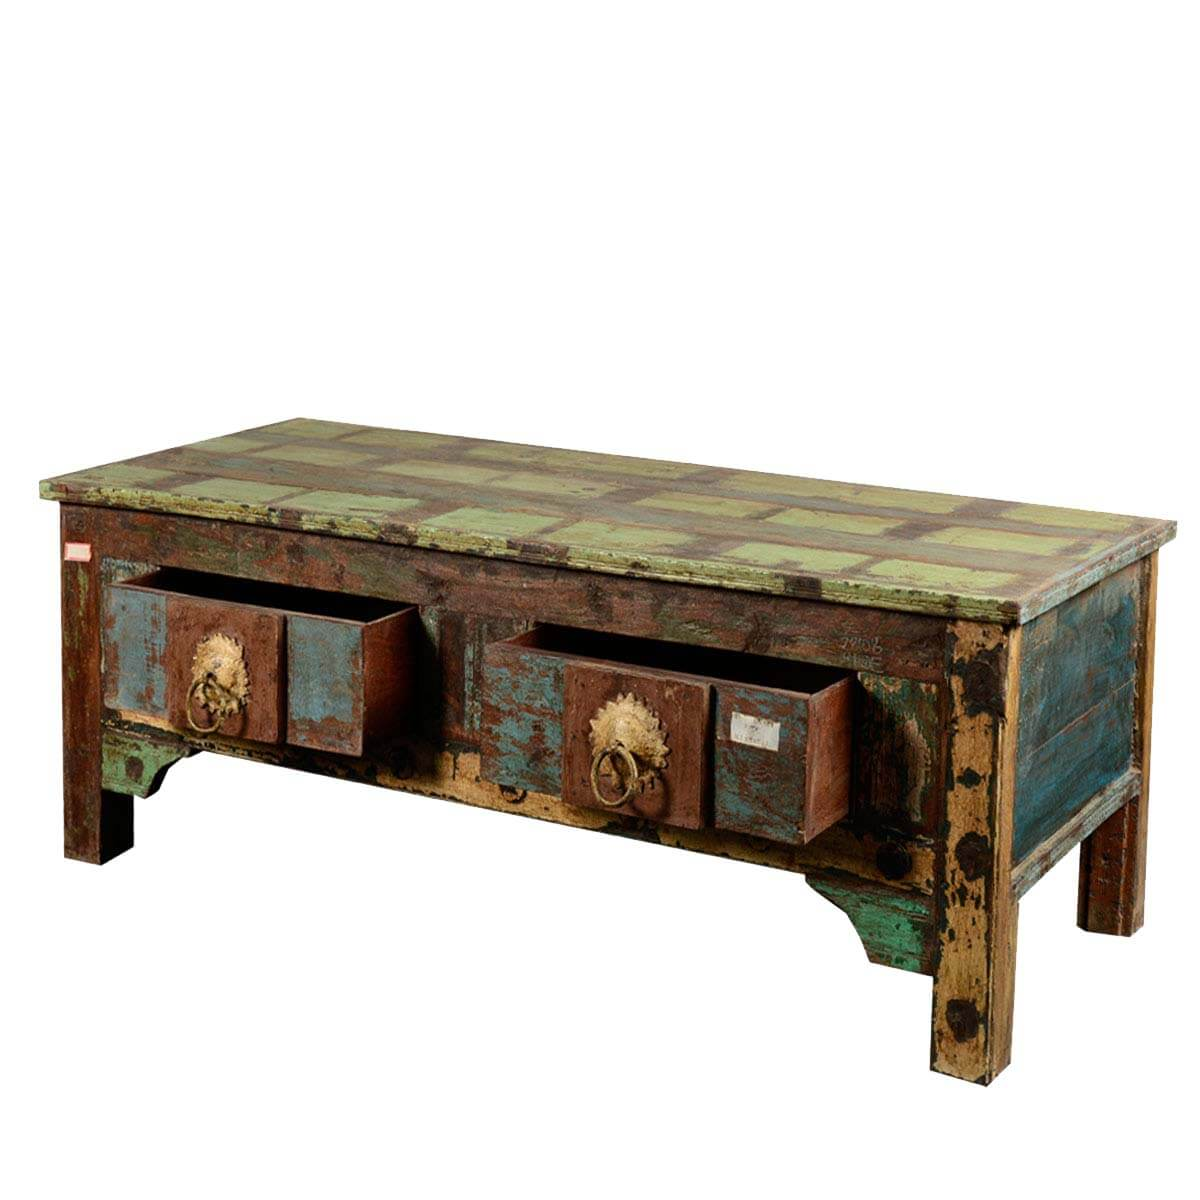 Rustic Reclaimed Wood Sea Comber Coffee Table With Storage Drawers